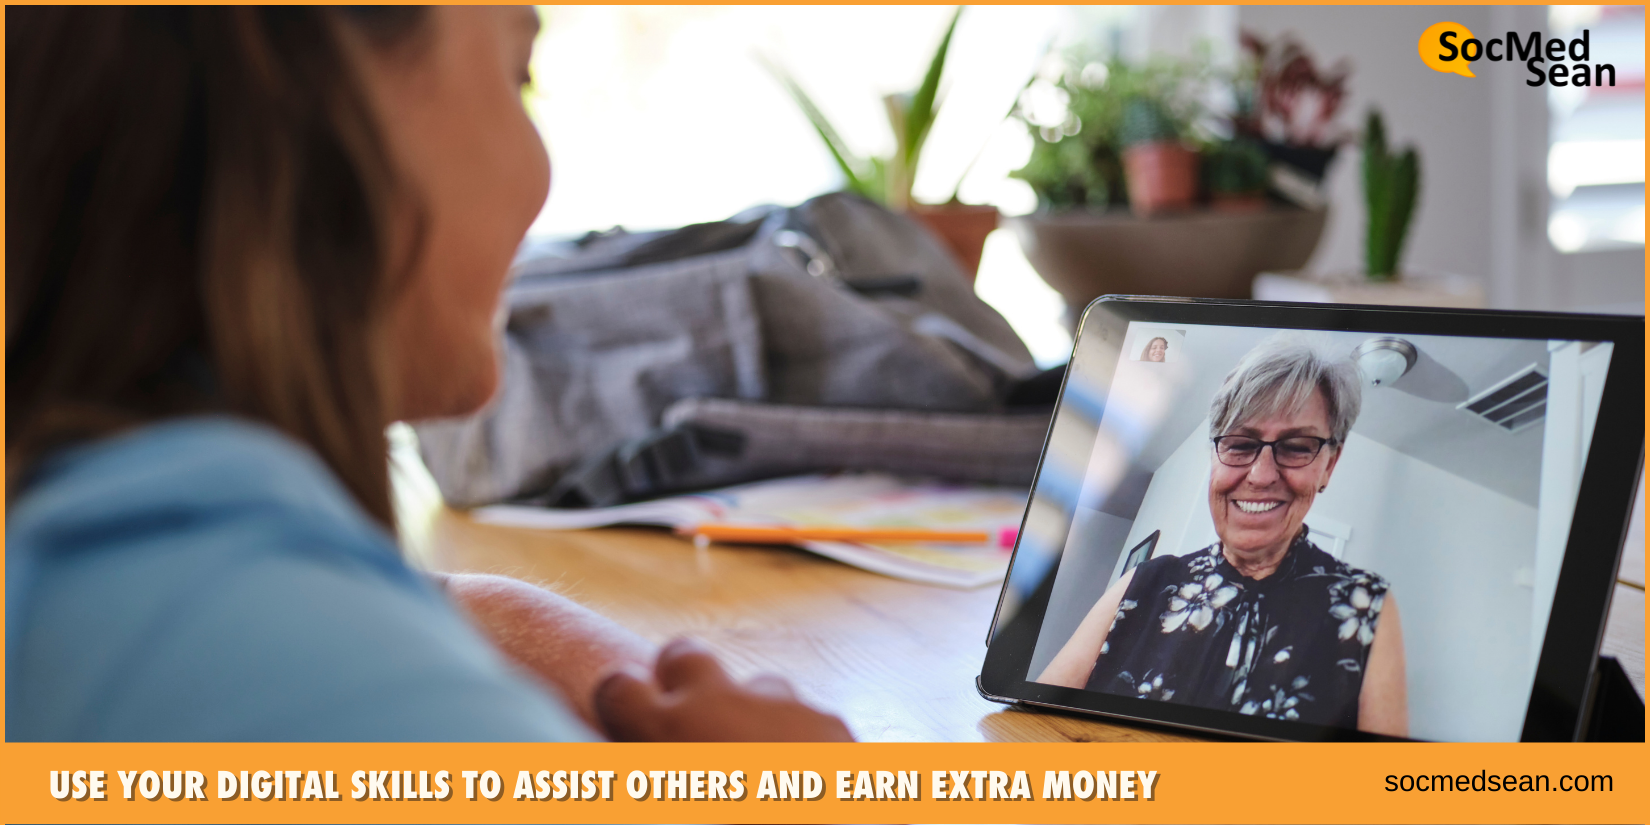 Use your digital skills to assist others and earn extra money